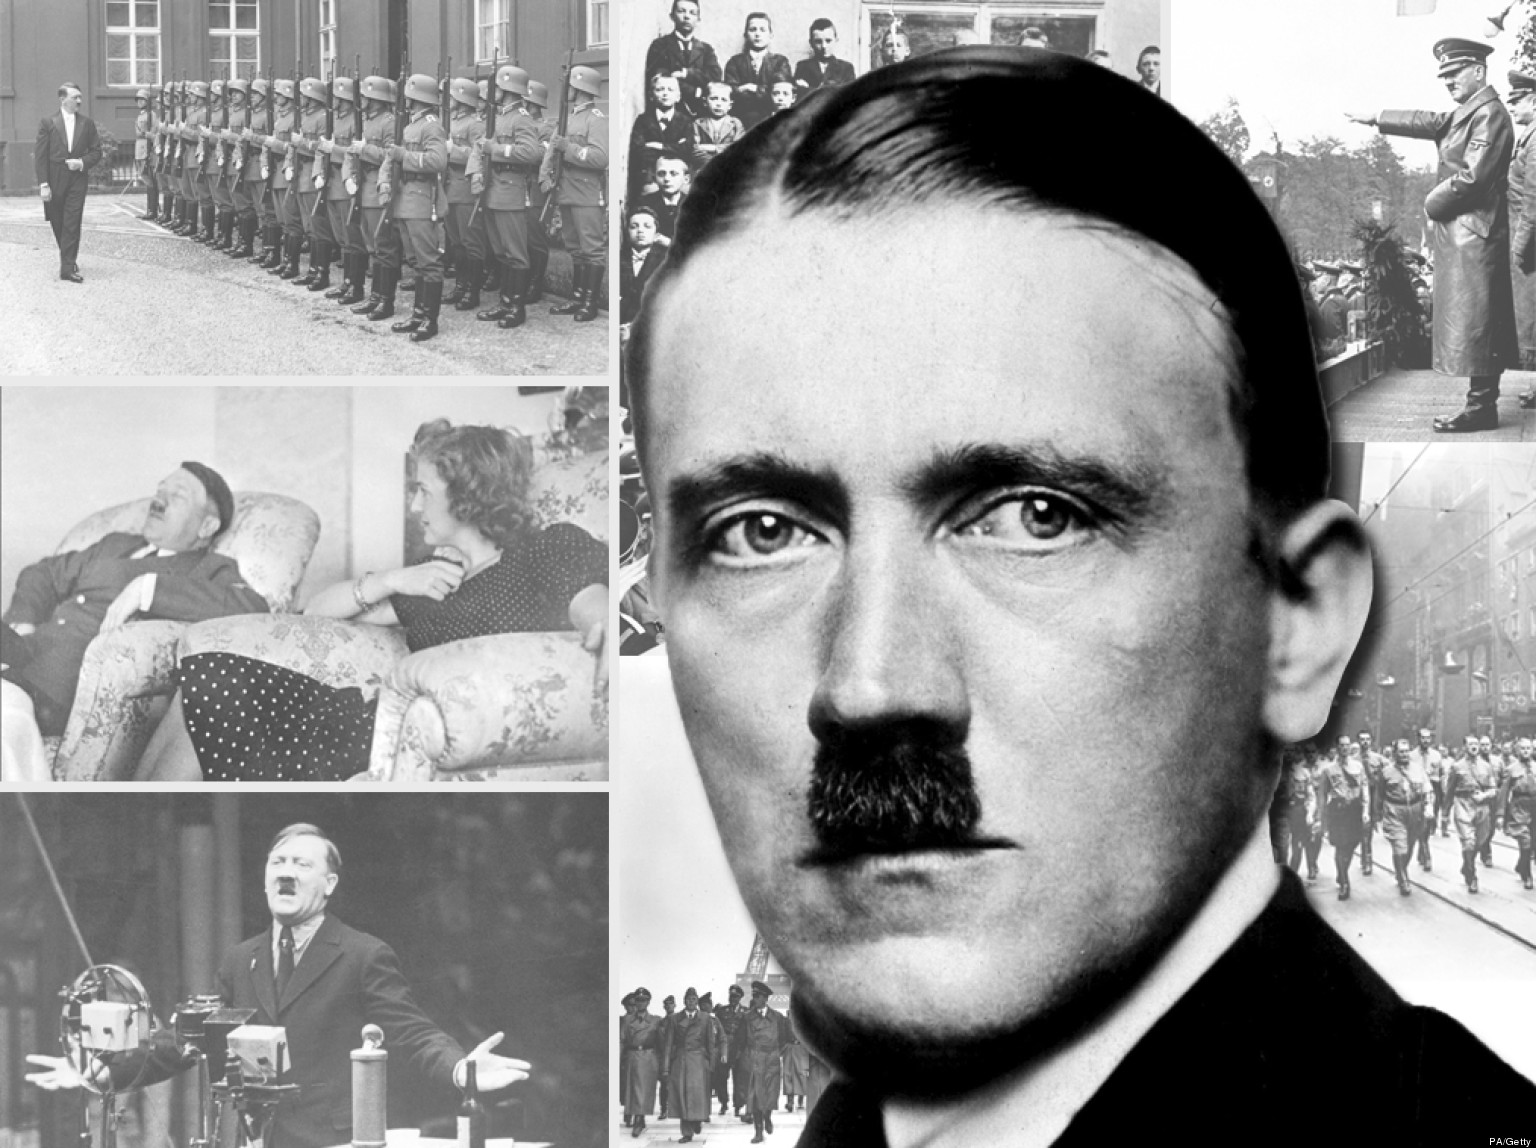 a life history of adolf hitler the son of a customs official alois hitler Adolf hitler, the holocaust and he was the son a customs official alois hitler  in the final hours of his life, adolf hitler hastily dictated a political.